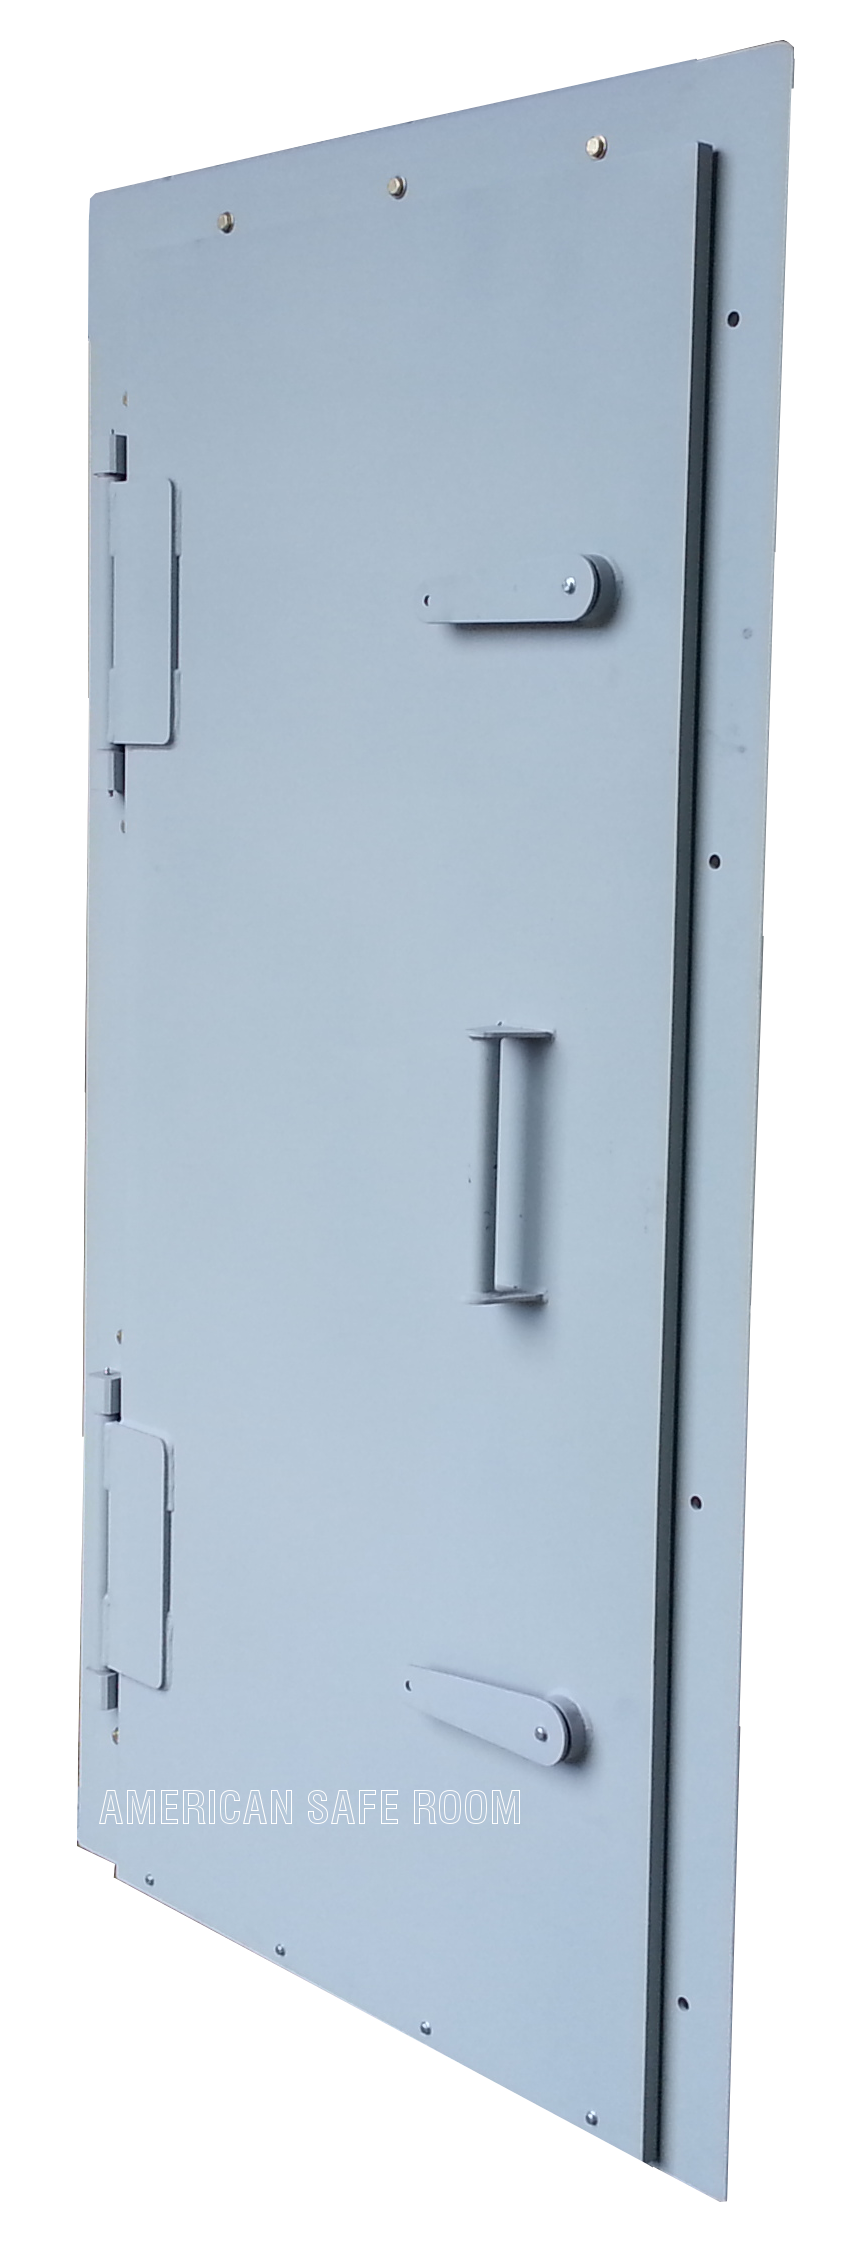 Blast door png. Single leaf resistant doors